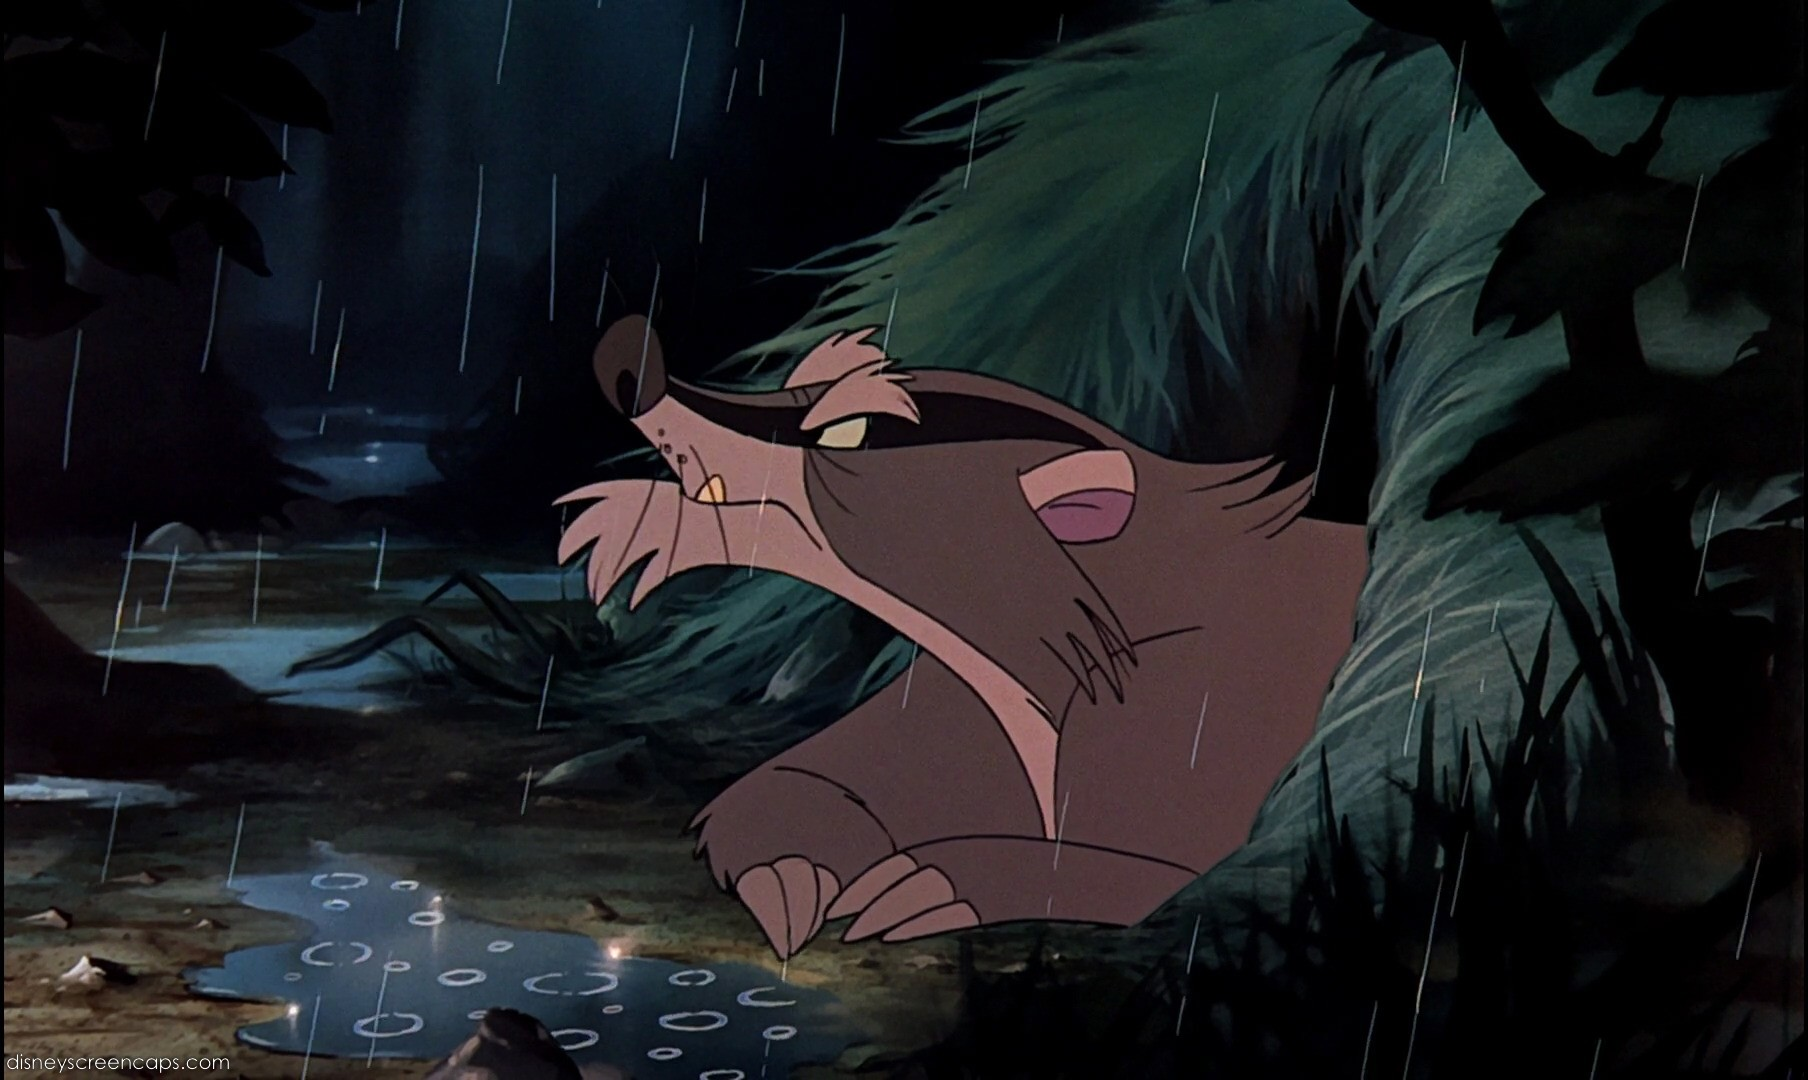 Cranky Badger (The Fox and the Hound)